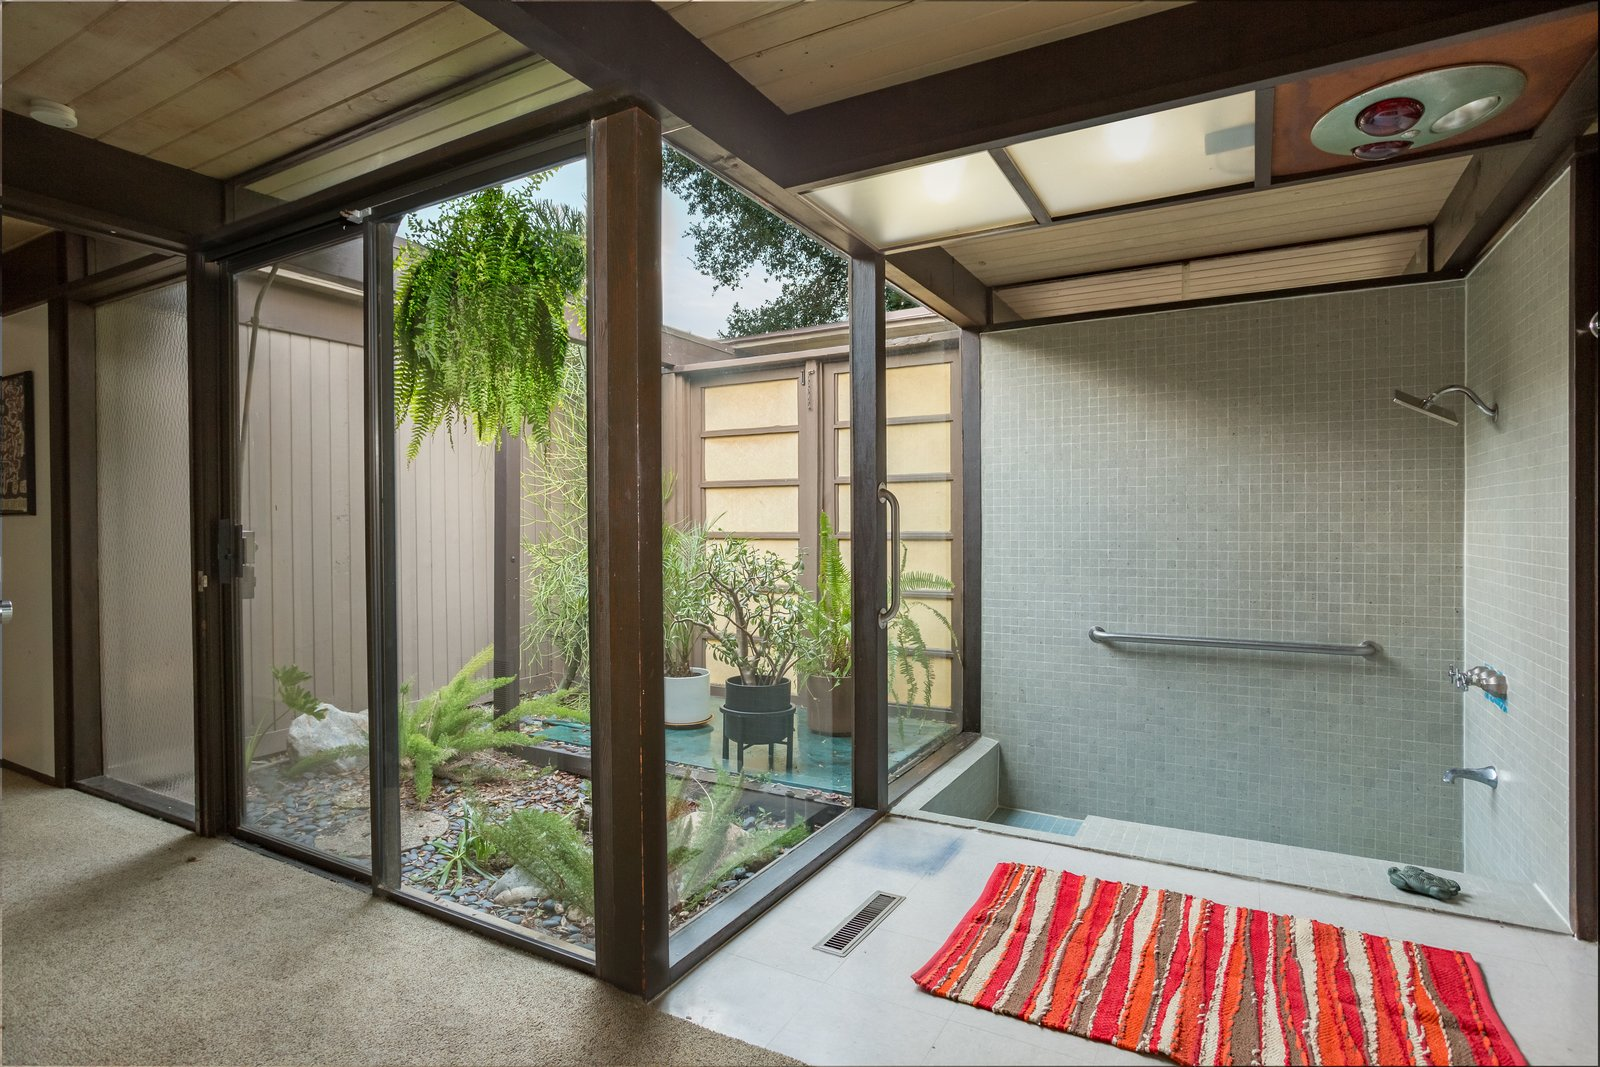 The sunken tile tub and shower in the ensuite master bathroom enjoys an outdoor connection in the form of a small atrium.  Photo 11 of 11 in Snag This Midcentury Stunner in Southern California For $799K